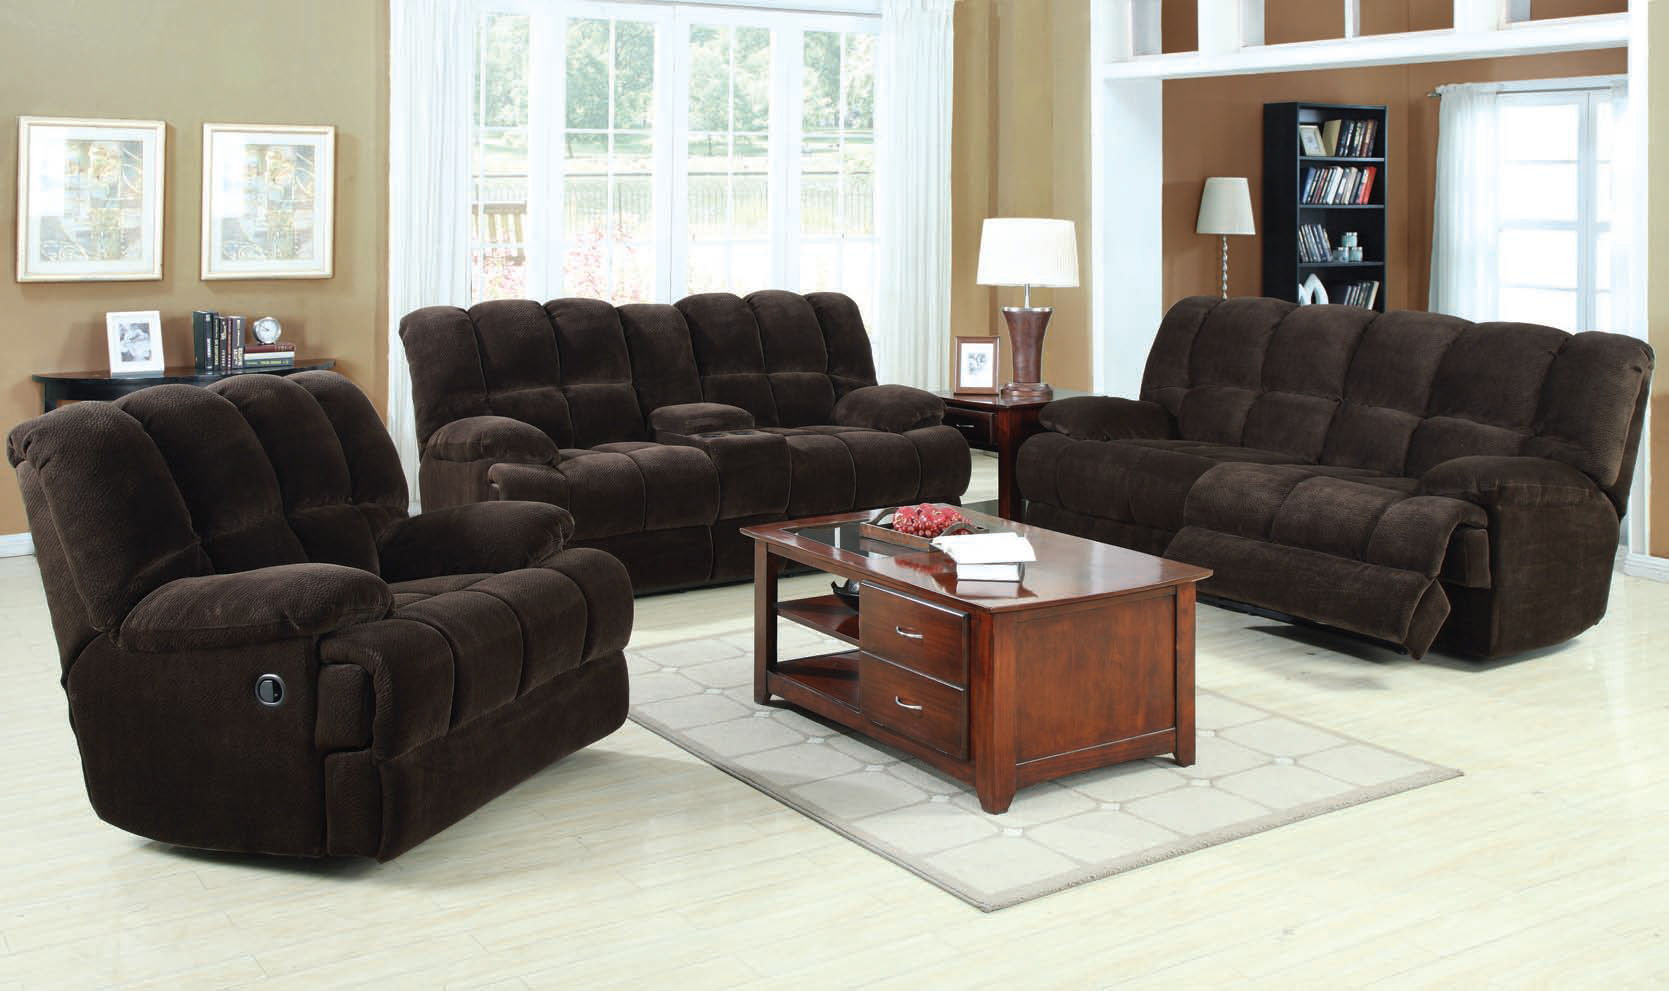 Ahearn casual chocolate fabric wood living room sets for Best deals on living room furniture sets